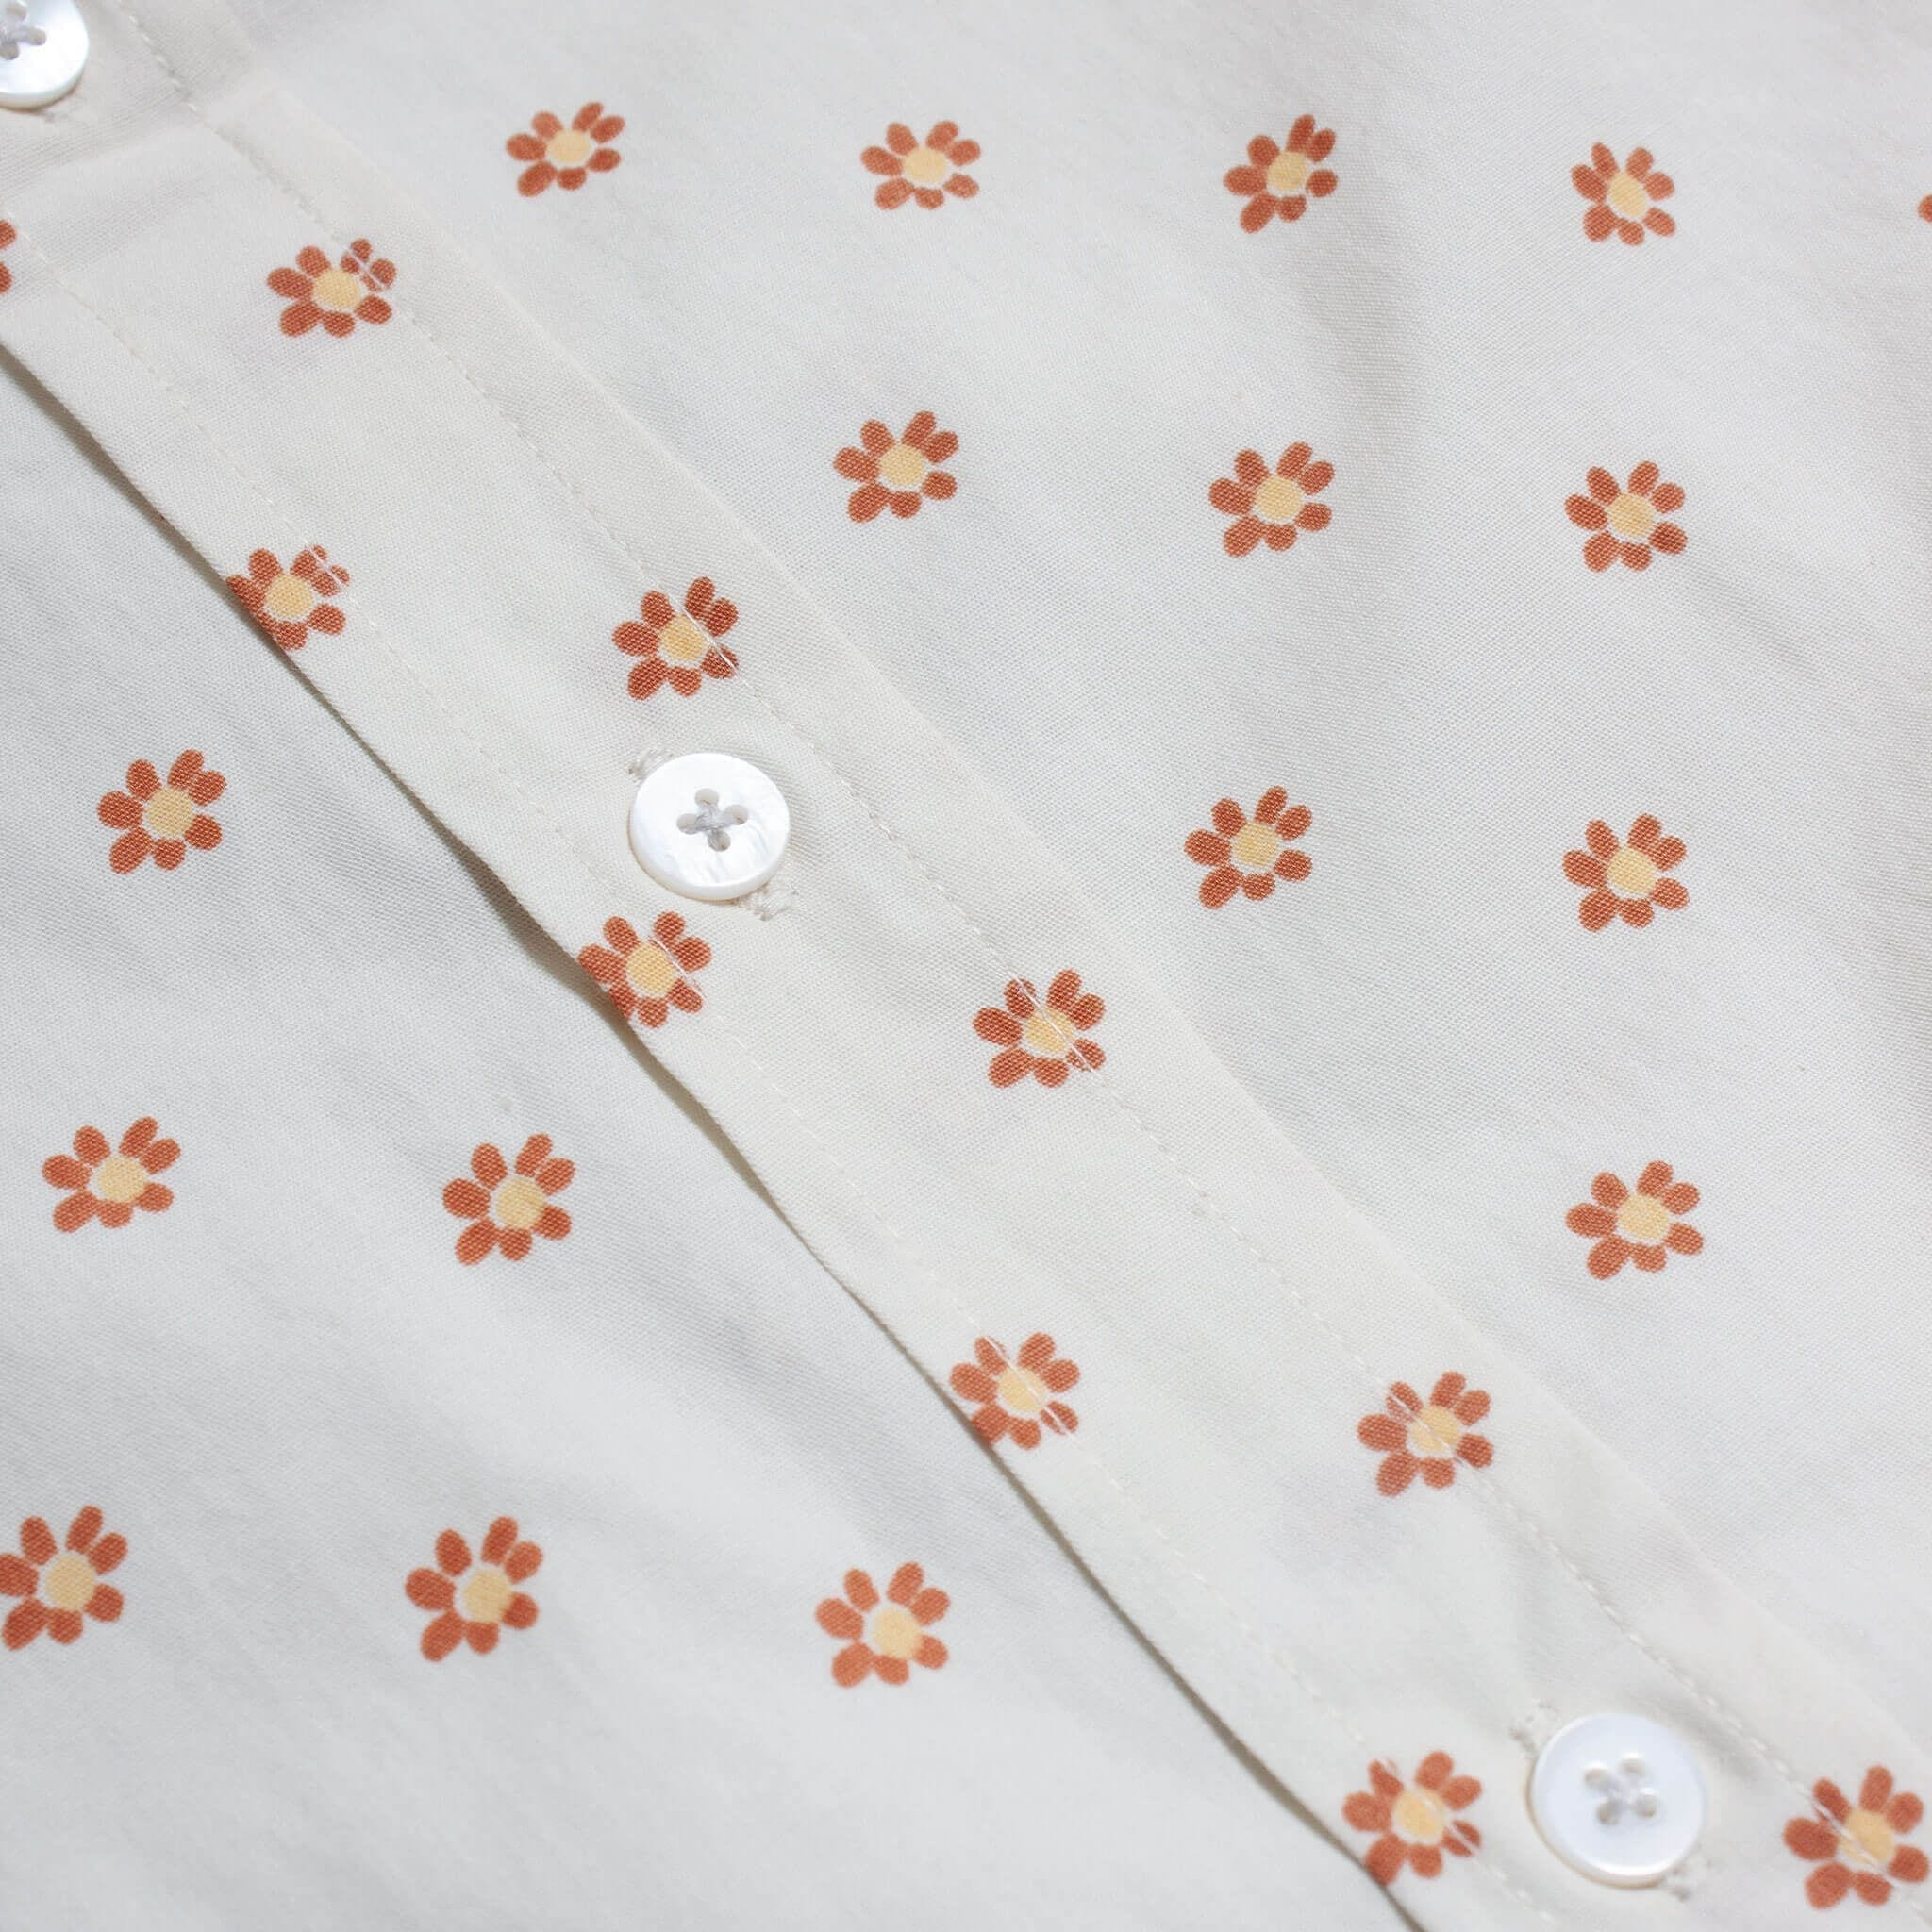 Far Afield Mod Button Down Short Sleeve Shirt a White BCI Cotton Flower Power Repeat Pattern Print Fabric Smart Casual 3